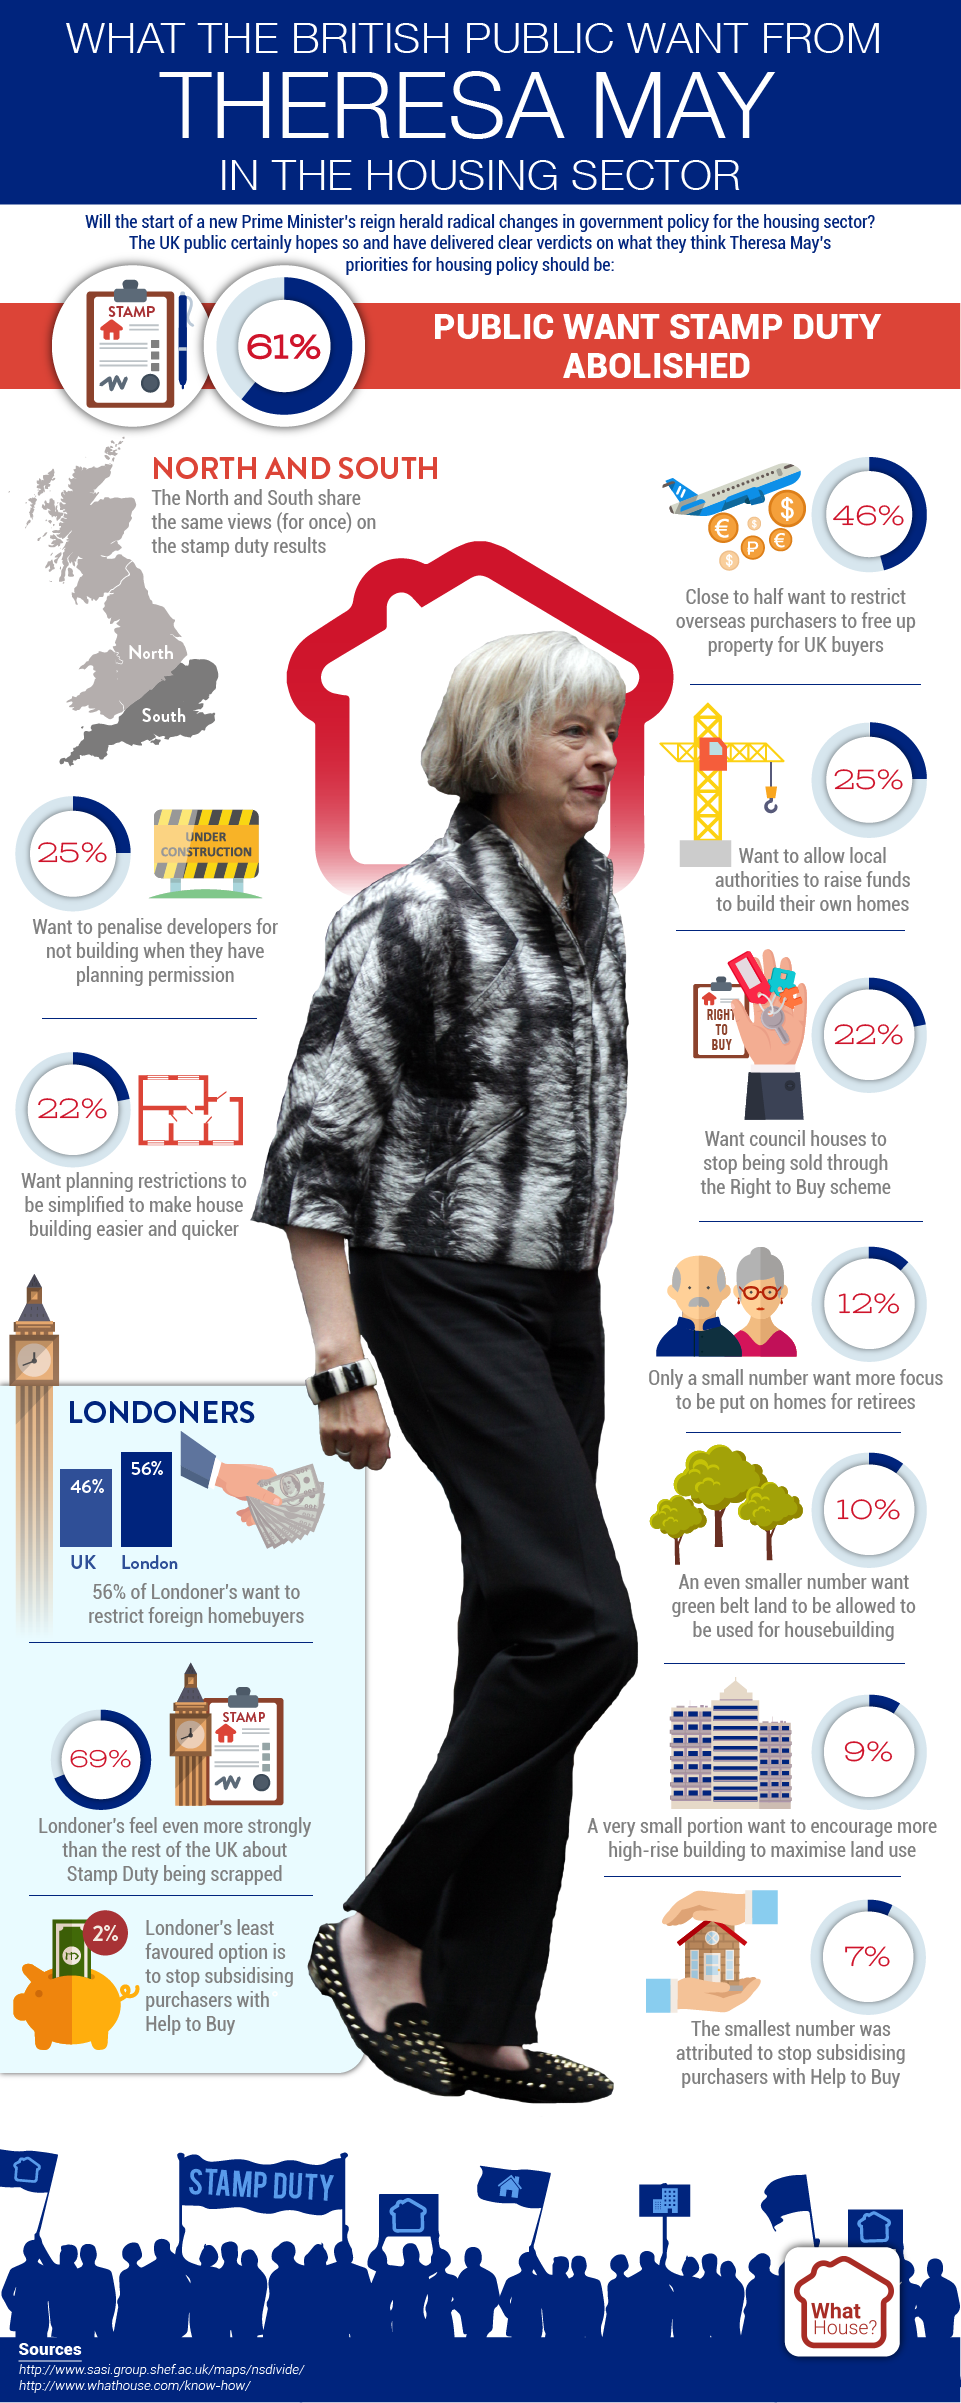 What The British Public Want From Theresa May In The Housing Sector?